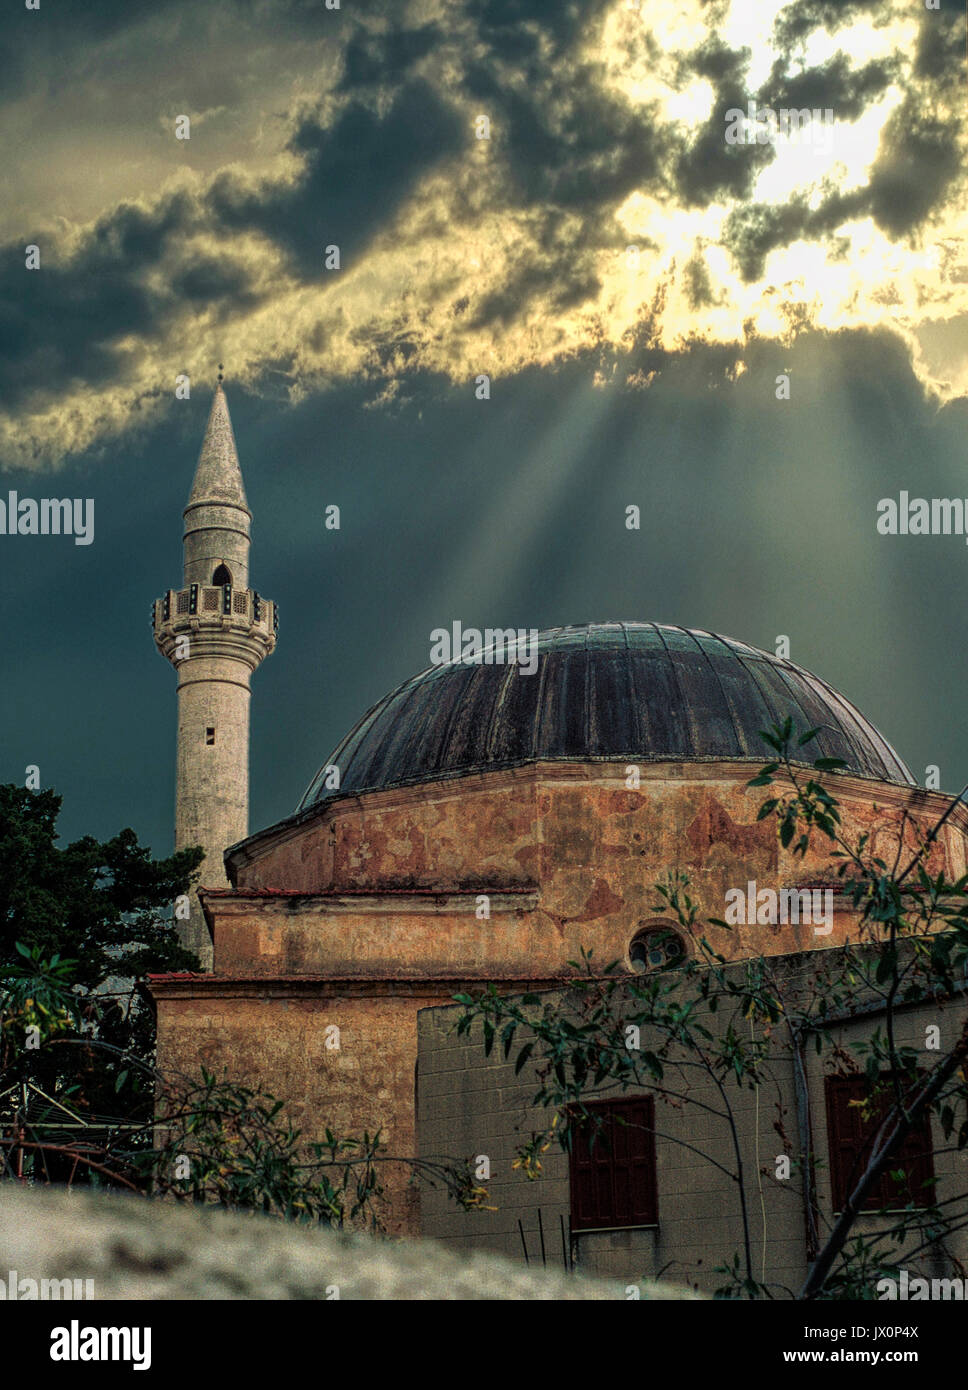 Old Mosque with Minaret in the Turkish section of Rhodes, Greece. the rays of the sun through the clounds seem to - Stock Image